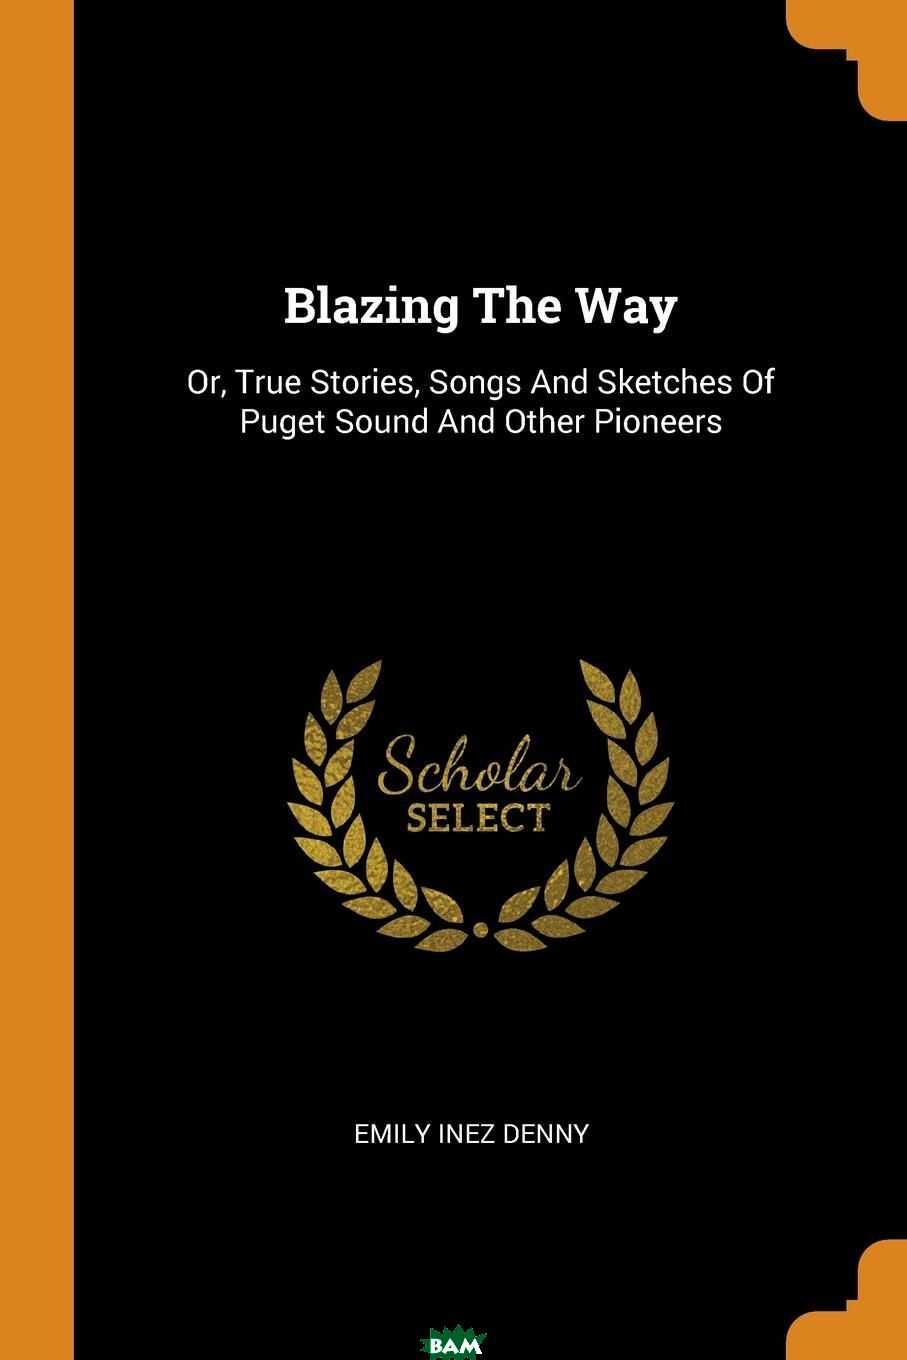 Blazing The Way. Or, True Stories, Songs And Sketches Of Puget Sound And Other Pioneers